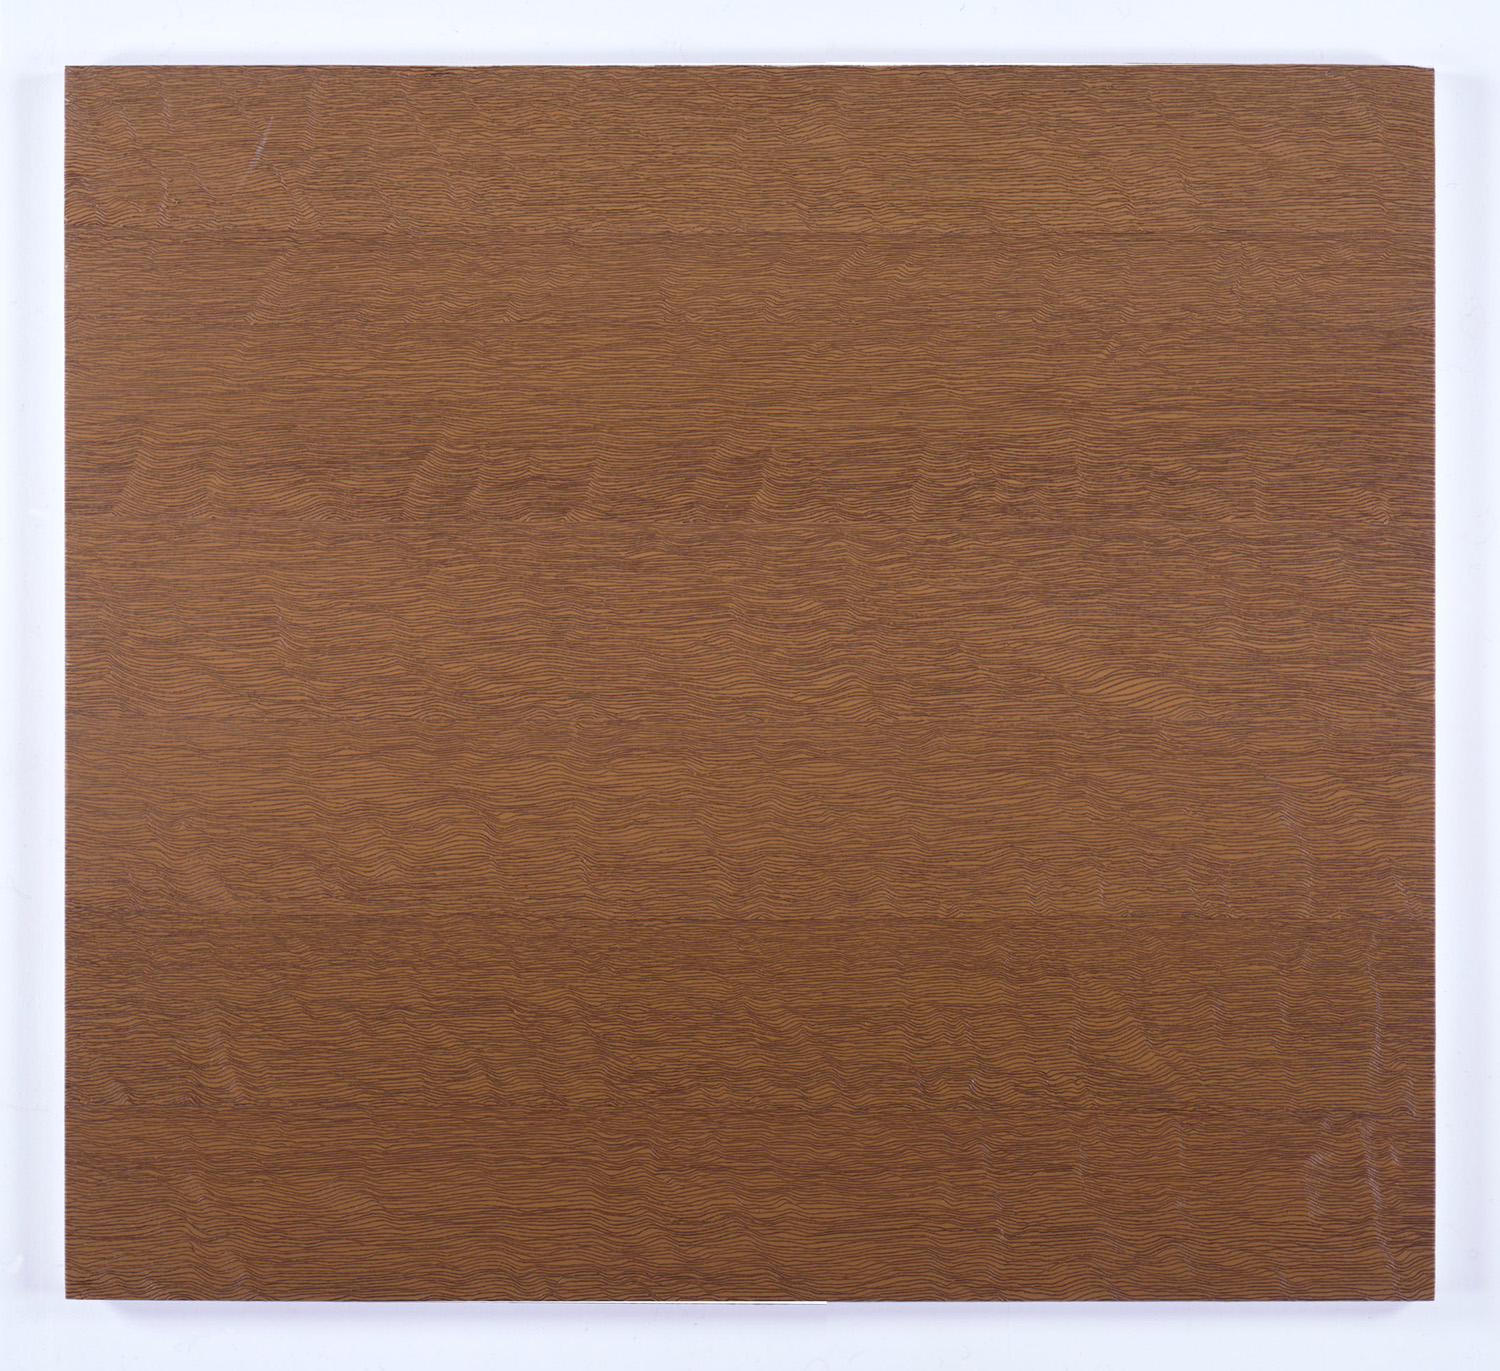 Untitled-Breath Raw Sienna<br>Oil on canvas, 96.5 x 106 cm 1997